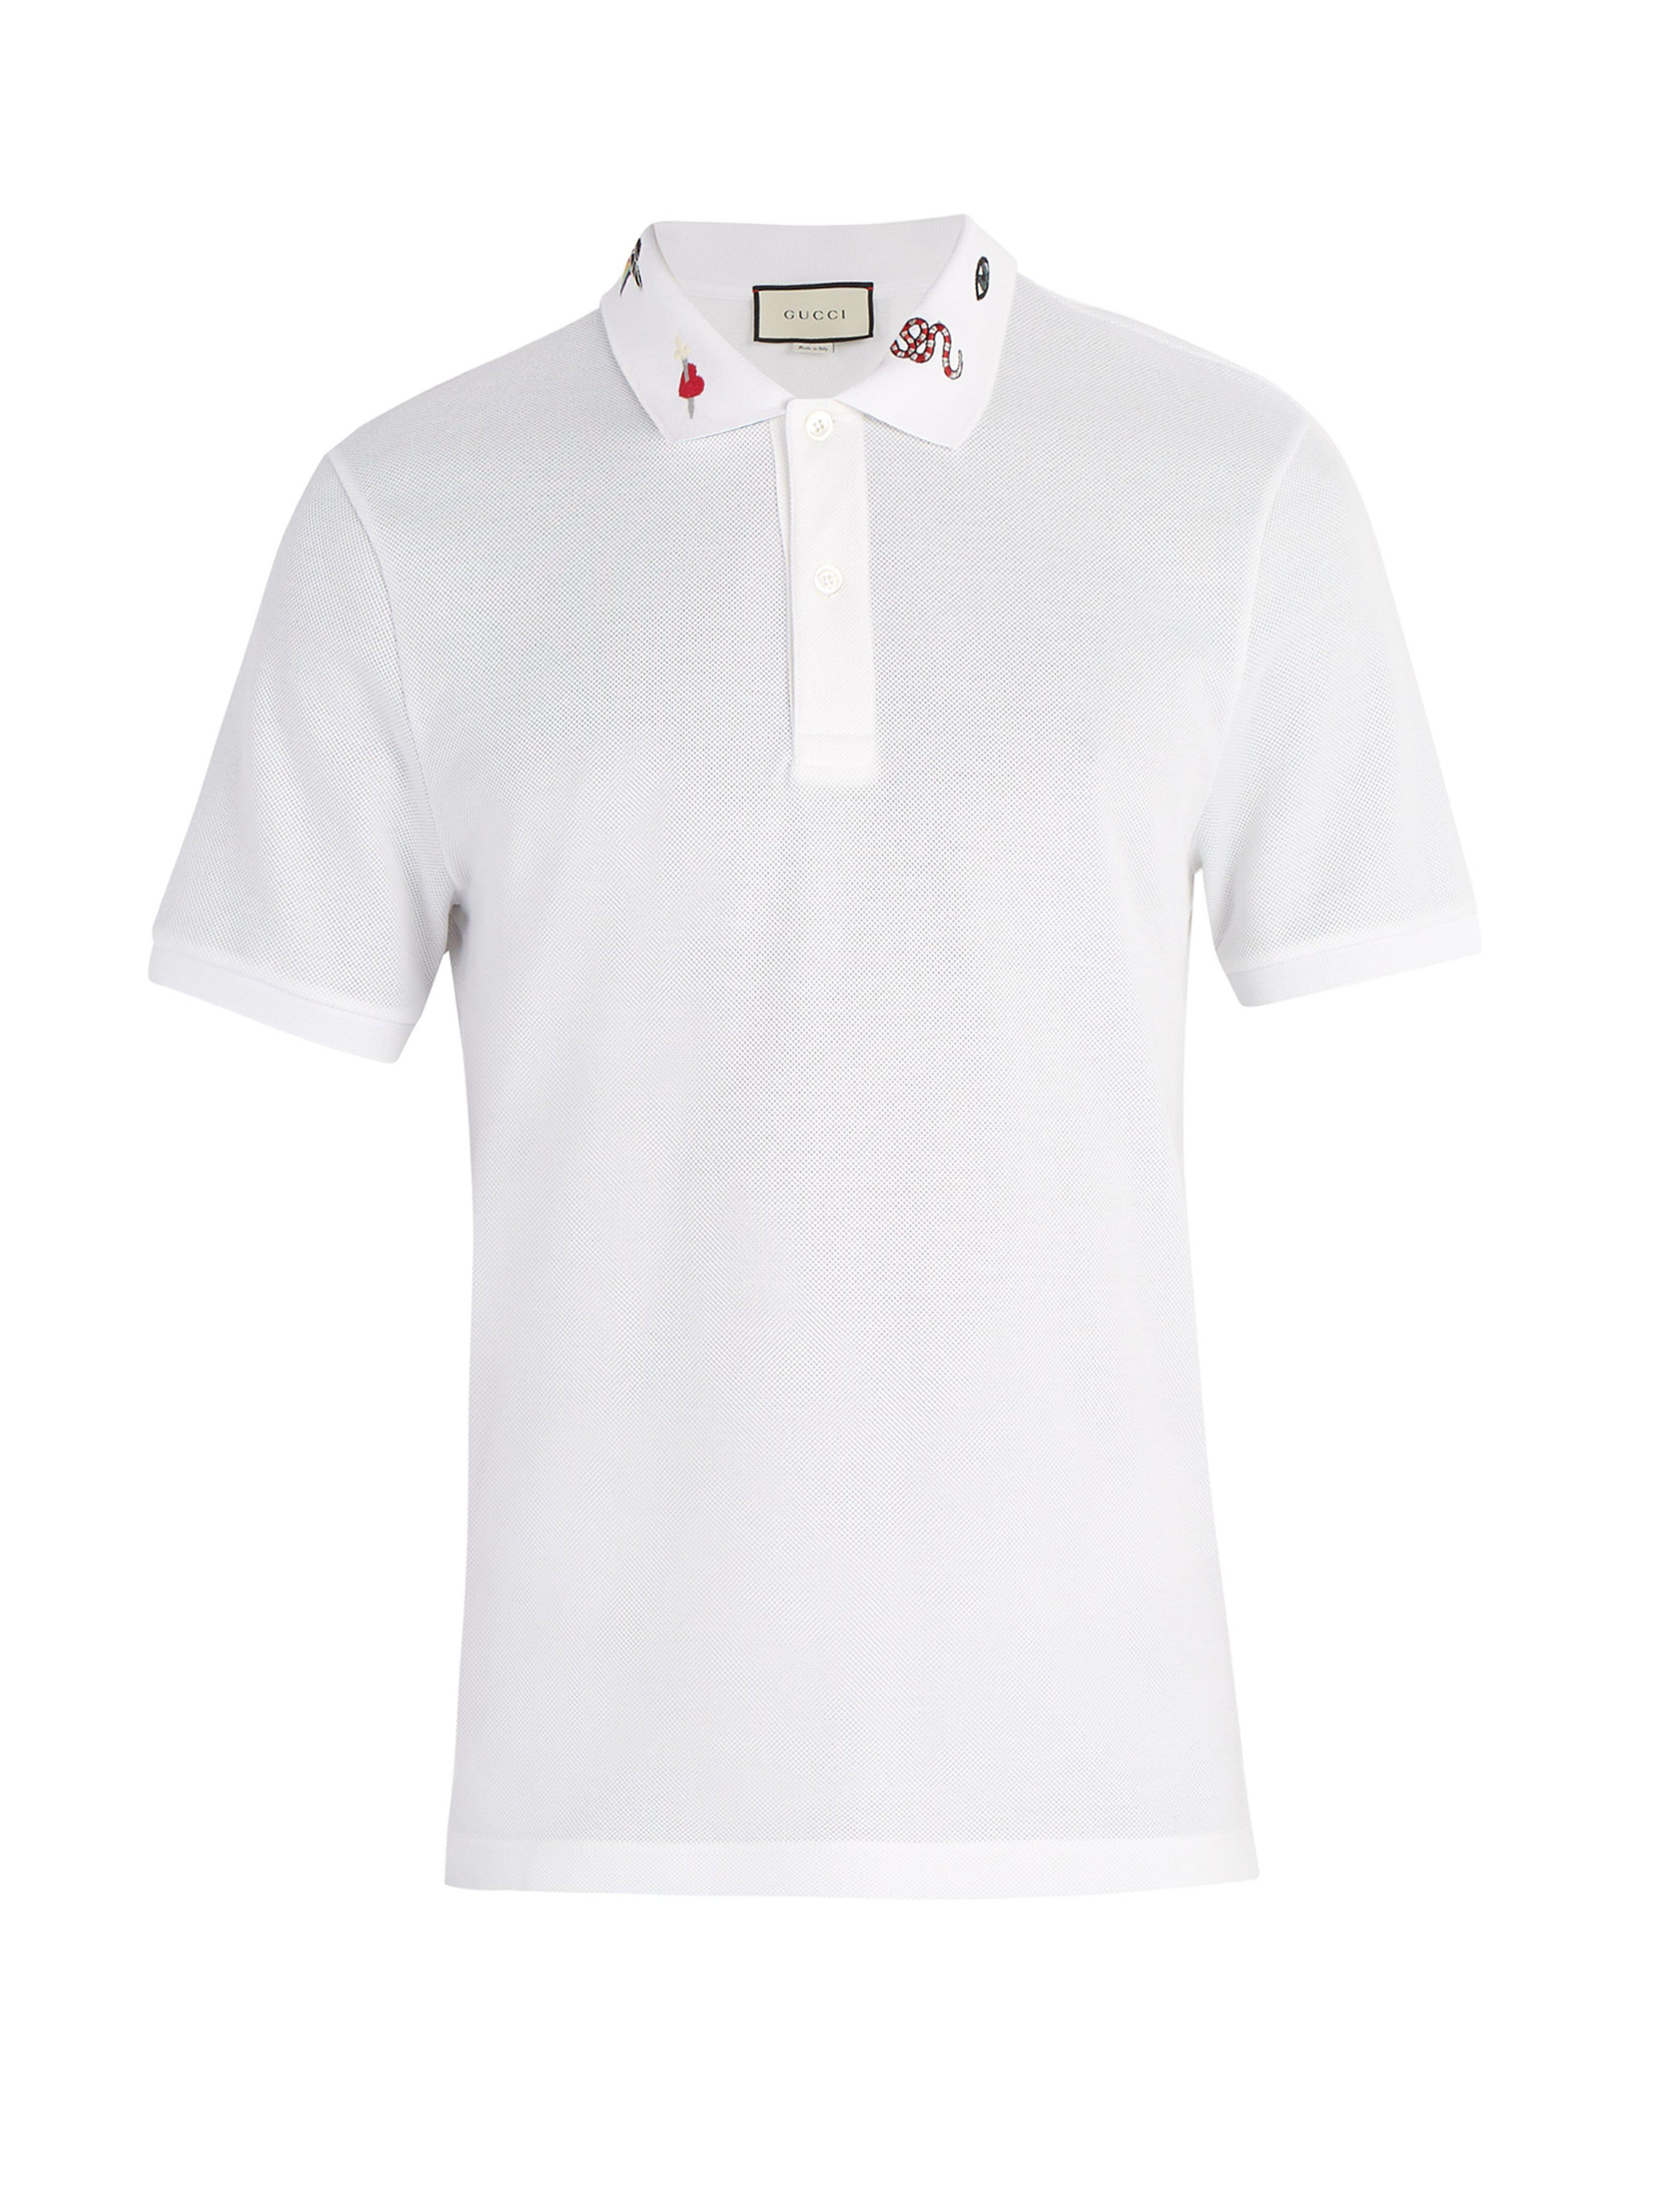 e7f4bb6769 Gucci Embroidered Collar Cotton Blend Piqué Polo Shirt in White for ...